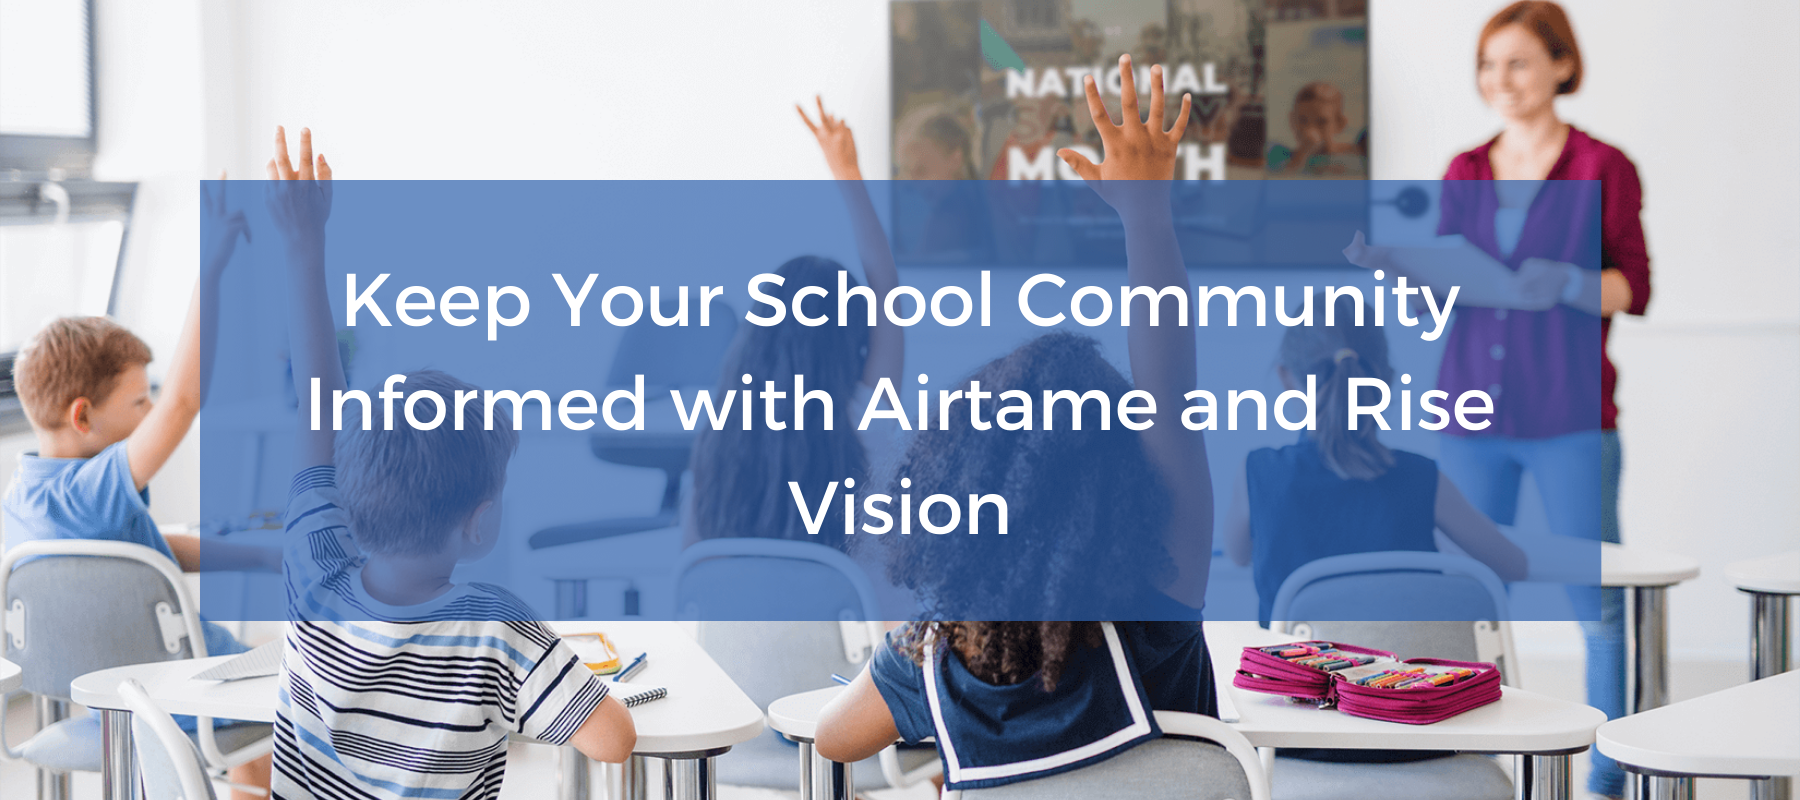 """""""Keep Your School Community Informed with Airtame and Rise Vision"""" overlaid on a photo of a classroom"""